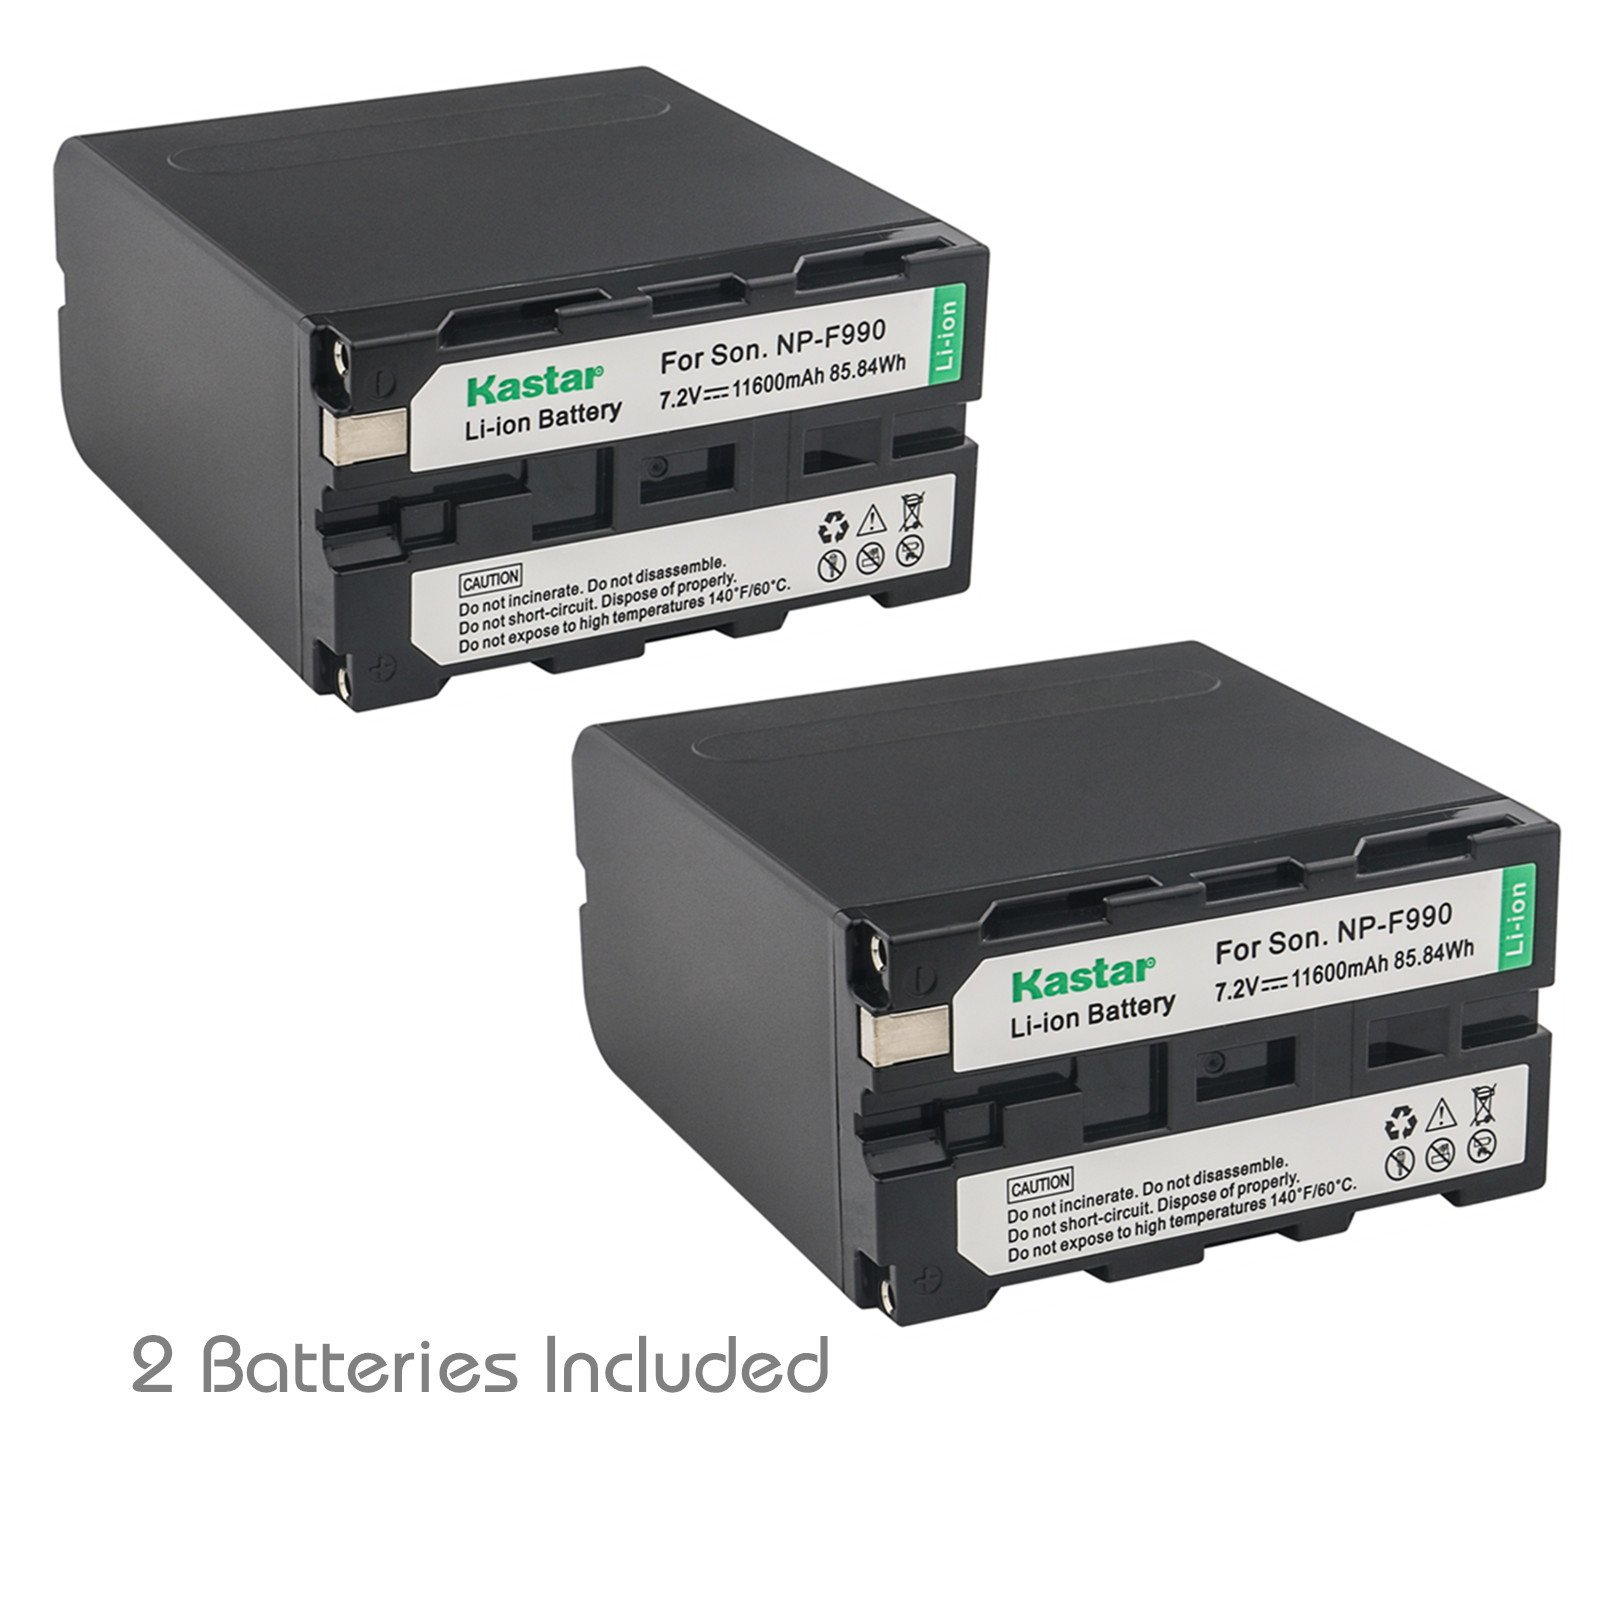 Kastar NP-F990 Battery 2 Pack, 7.2V 11600mAh Replacement for NP-F975 NP-F970 NP-F960 NP-F950 NP-F930 NP-F770 NP-F750 NP-F730 NP-F570 NP-F550 NP-F530 NP-F330 Battery, Sony Camcorder and LED Video Light by Kastar